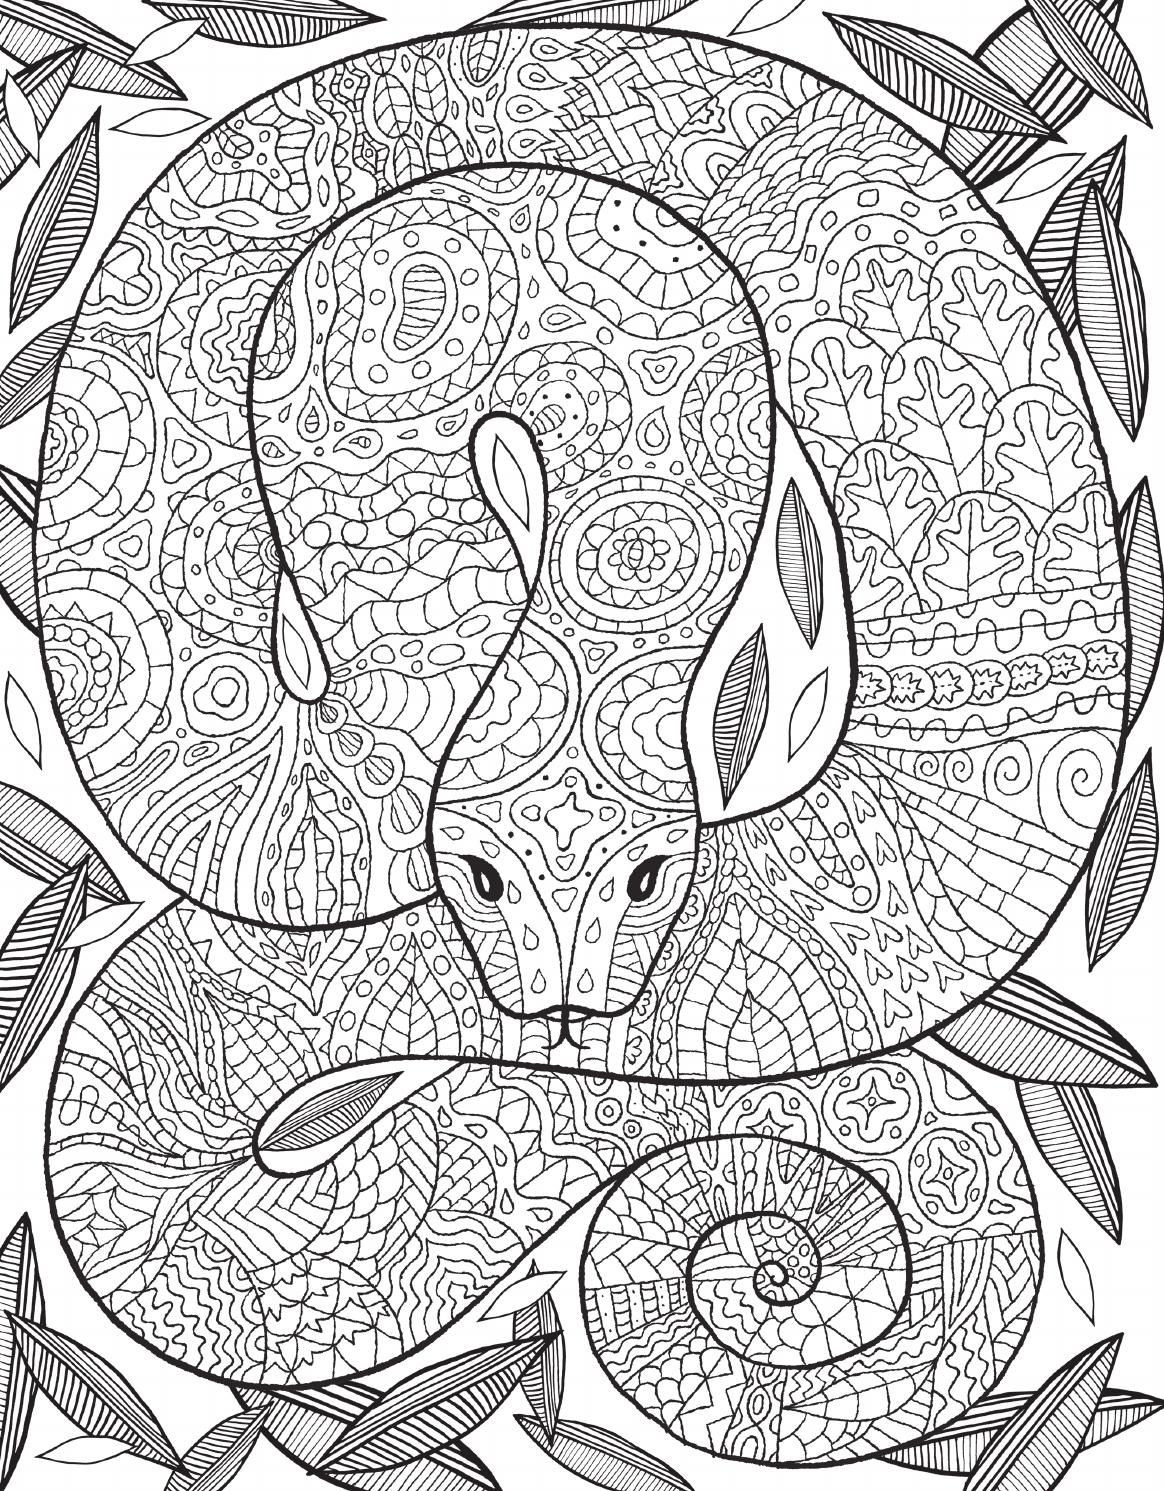 Best ideas about Snake Coloring Pages For Adults . Save or Pin El libro de la selva Now.